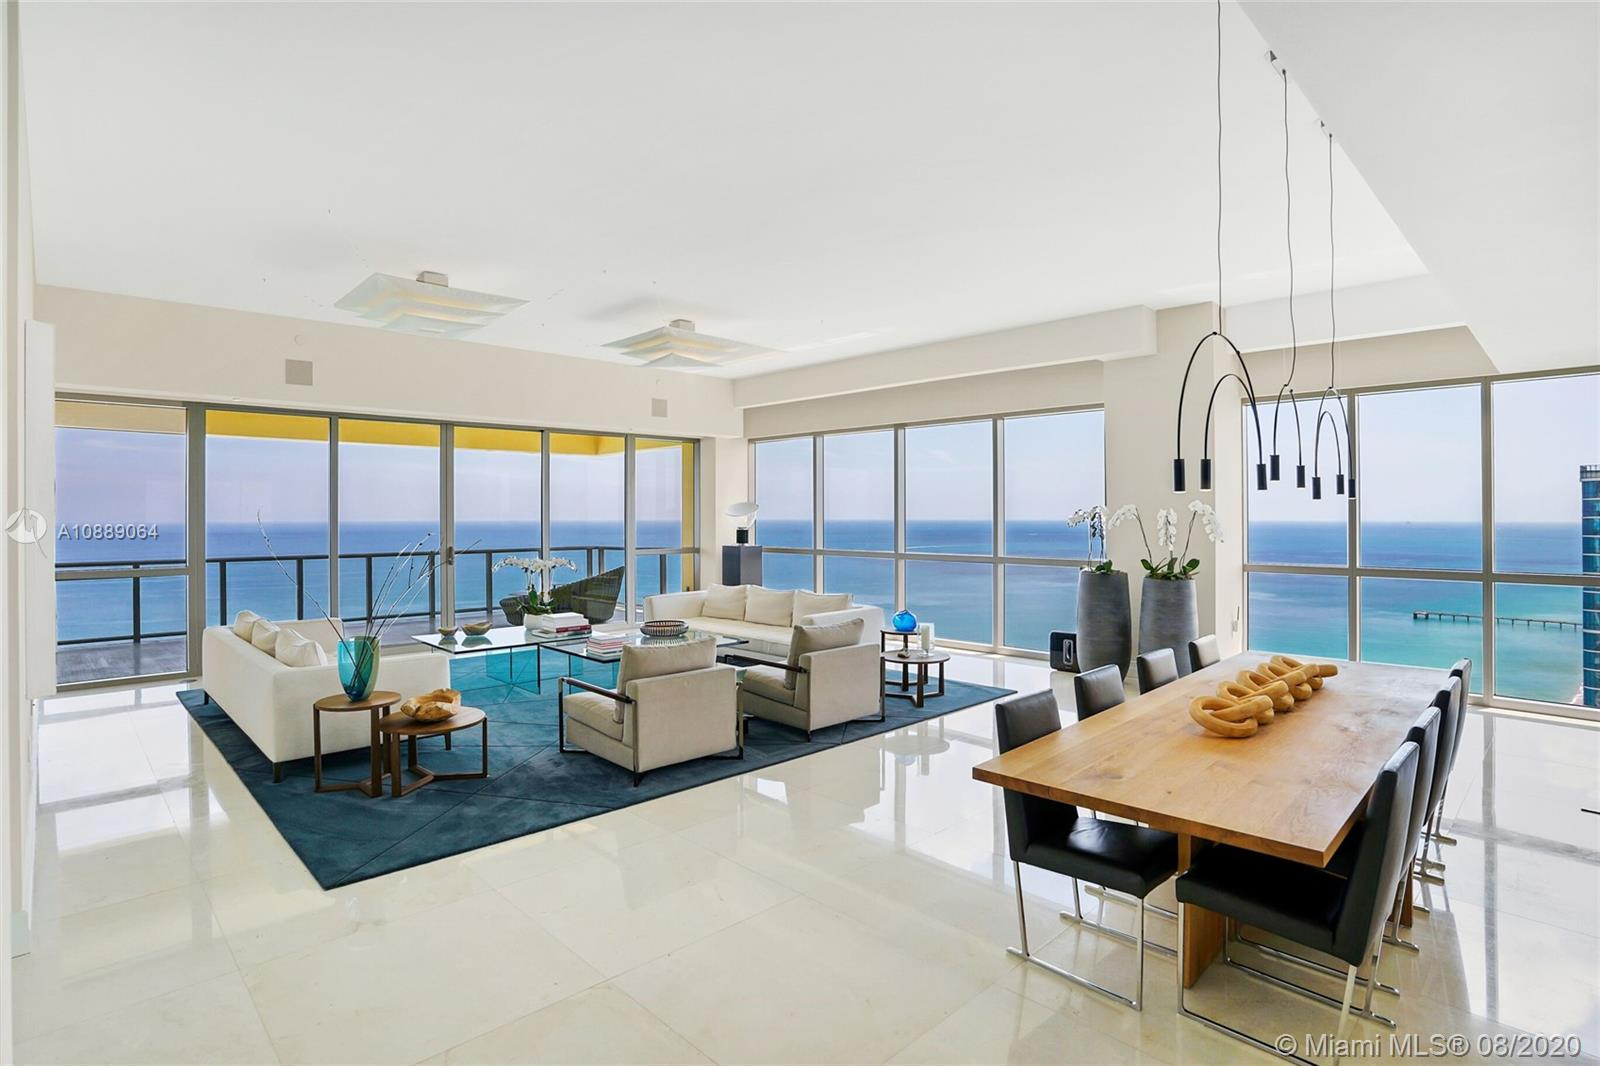 17749 Collins Ave, Unit #3202 Luxury Real Estate